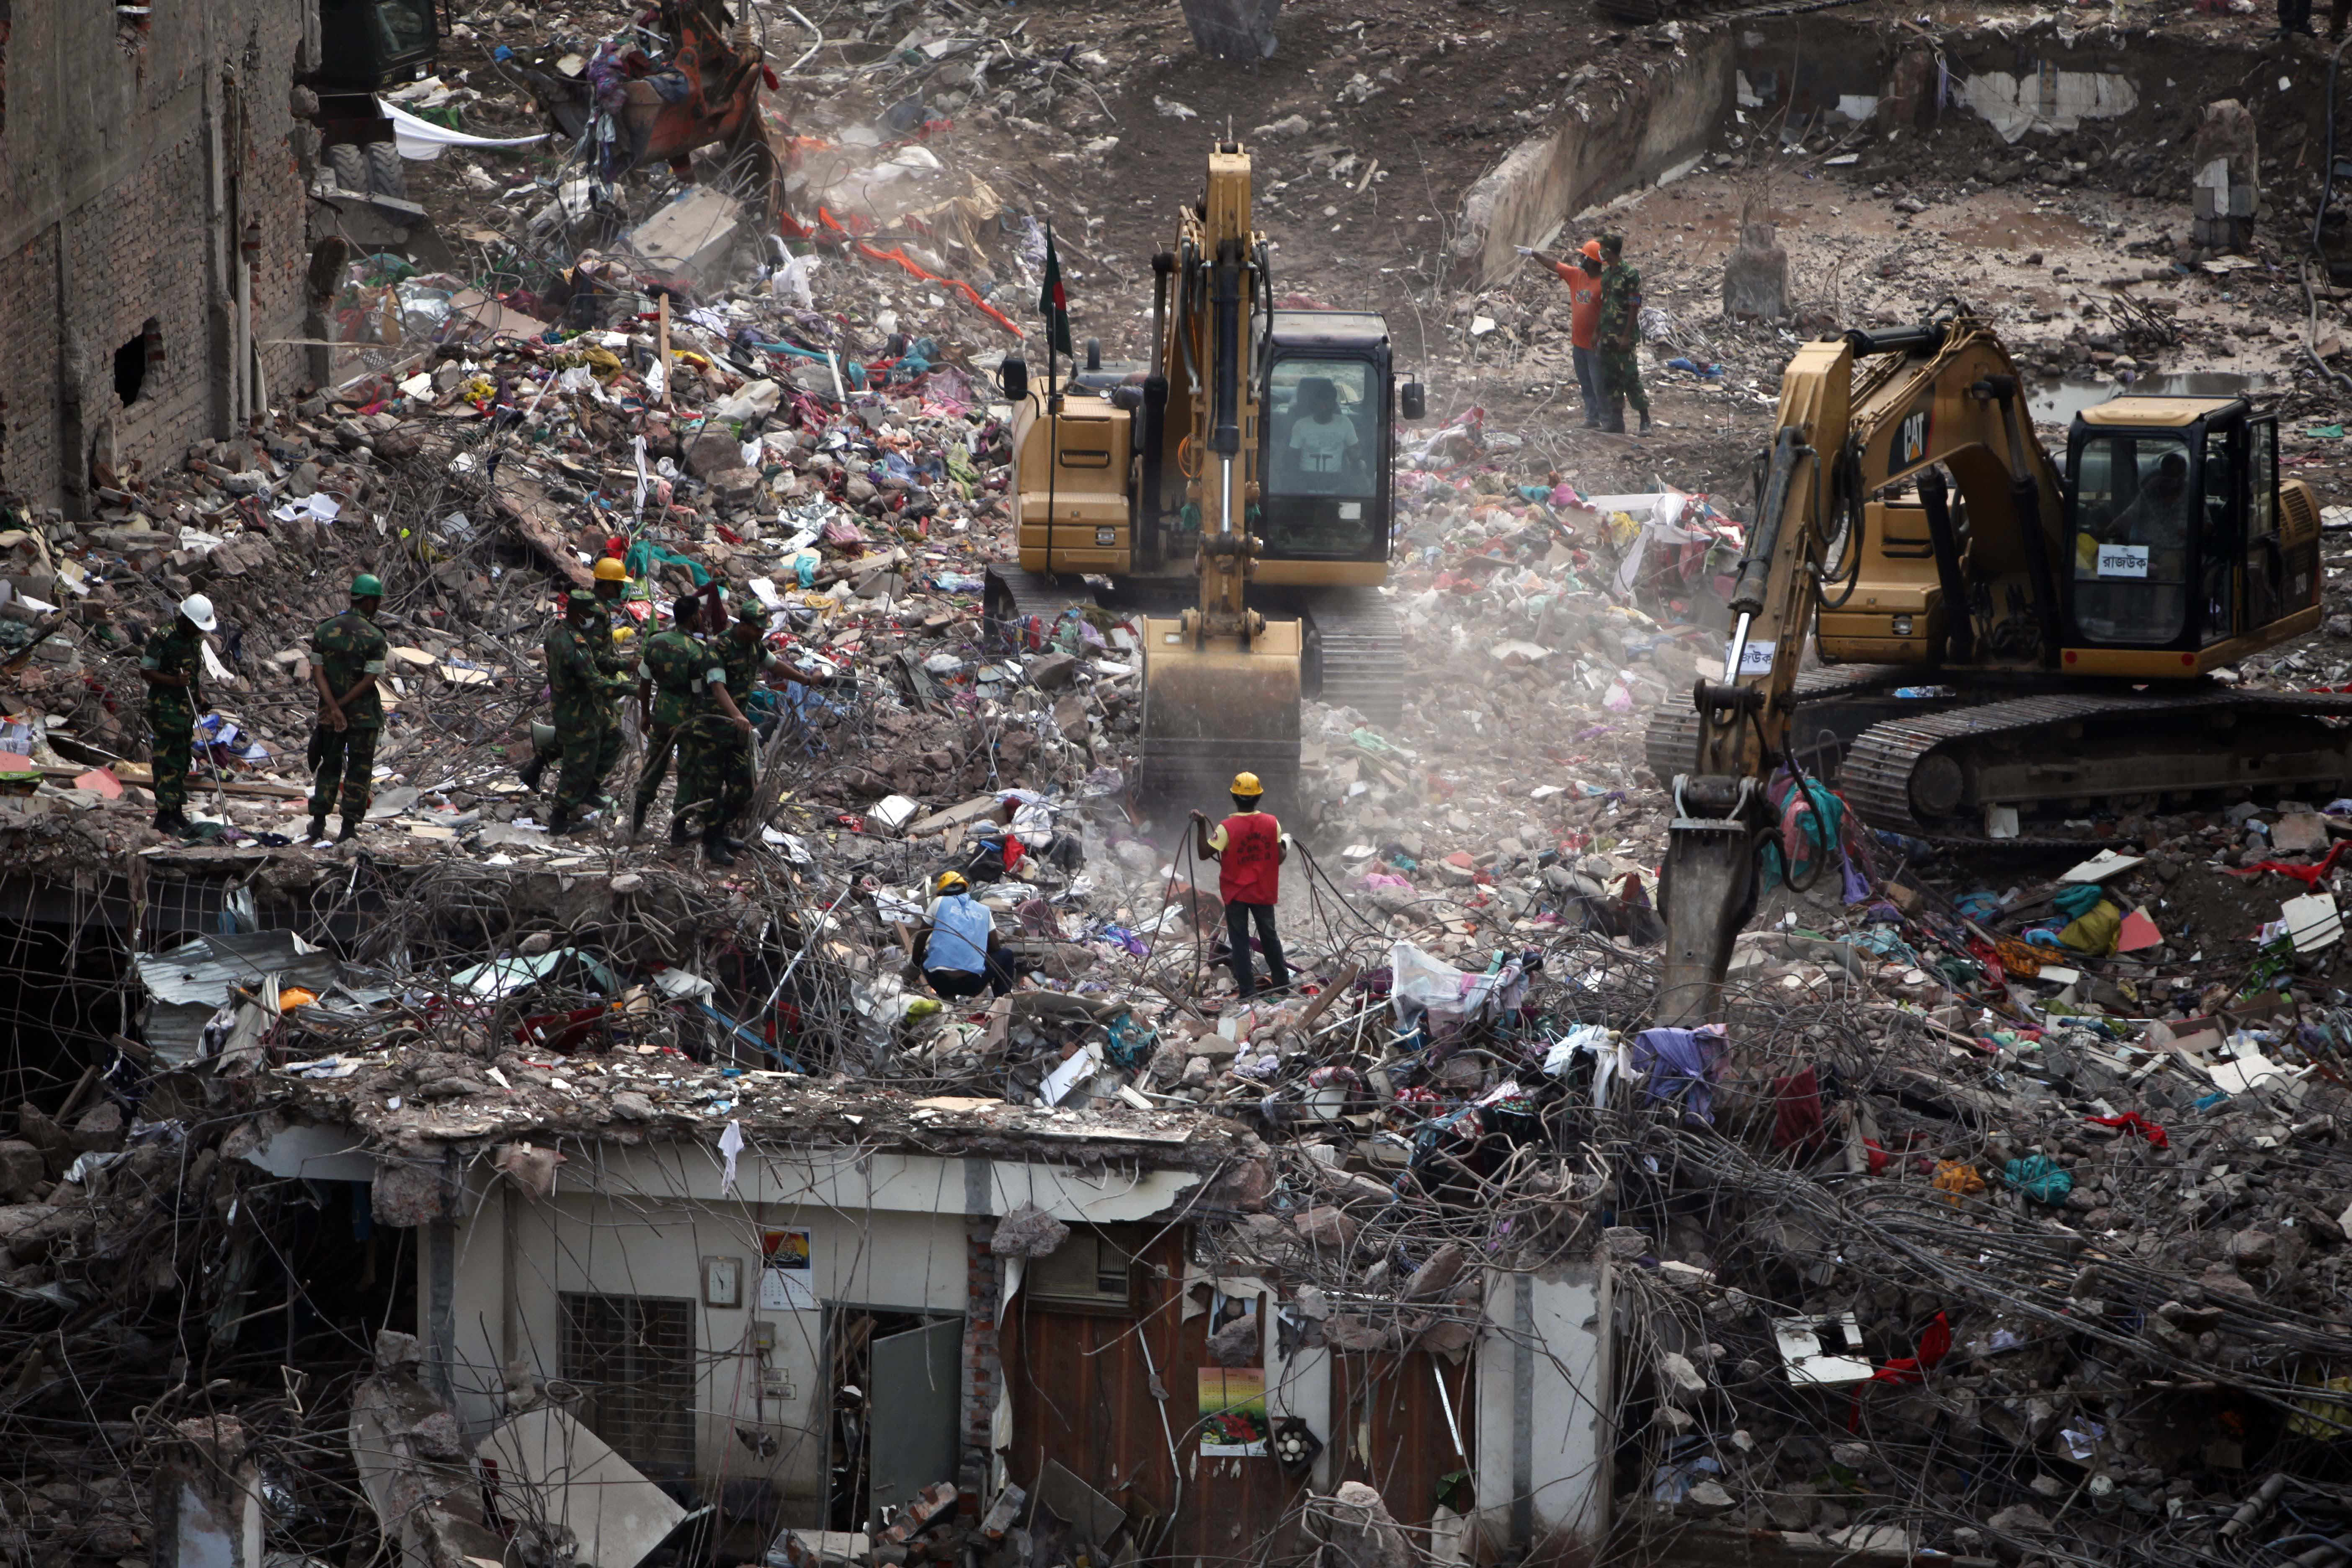 Search for bodies at Bangladesh factory collapse ends, death toll at 1,127